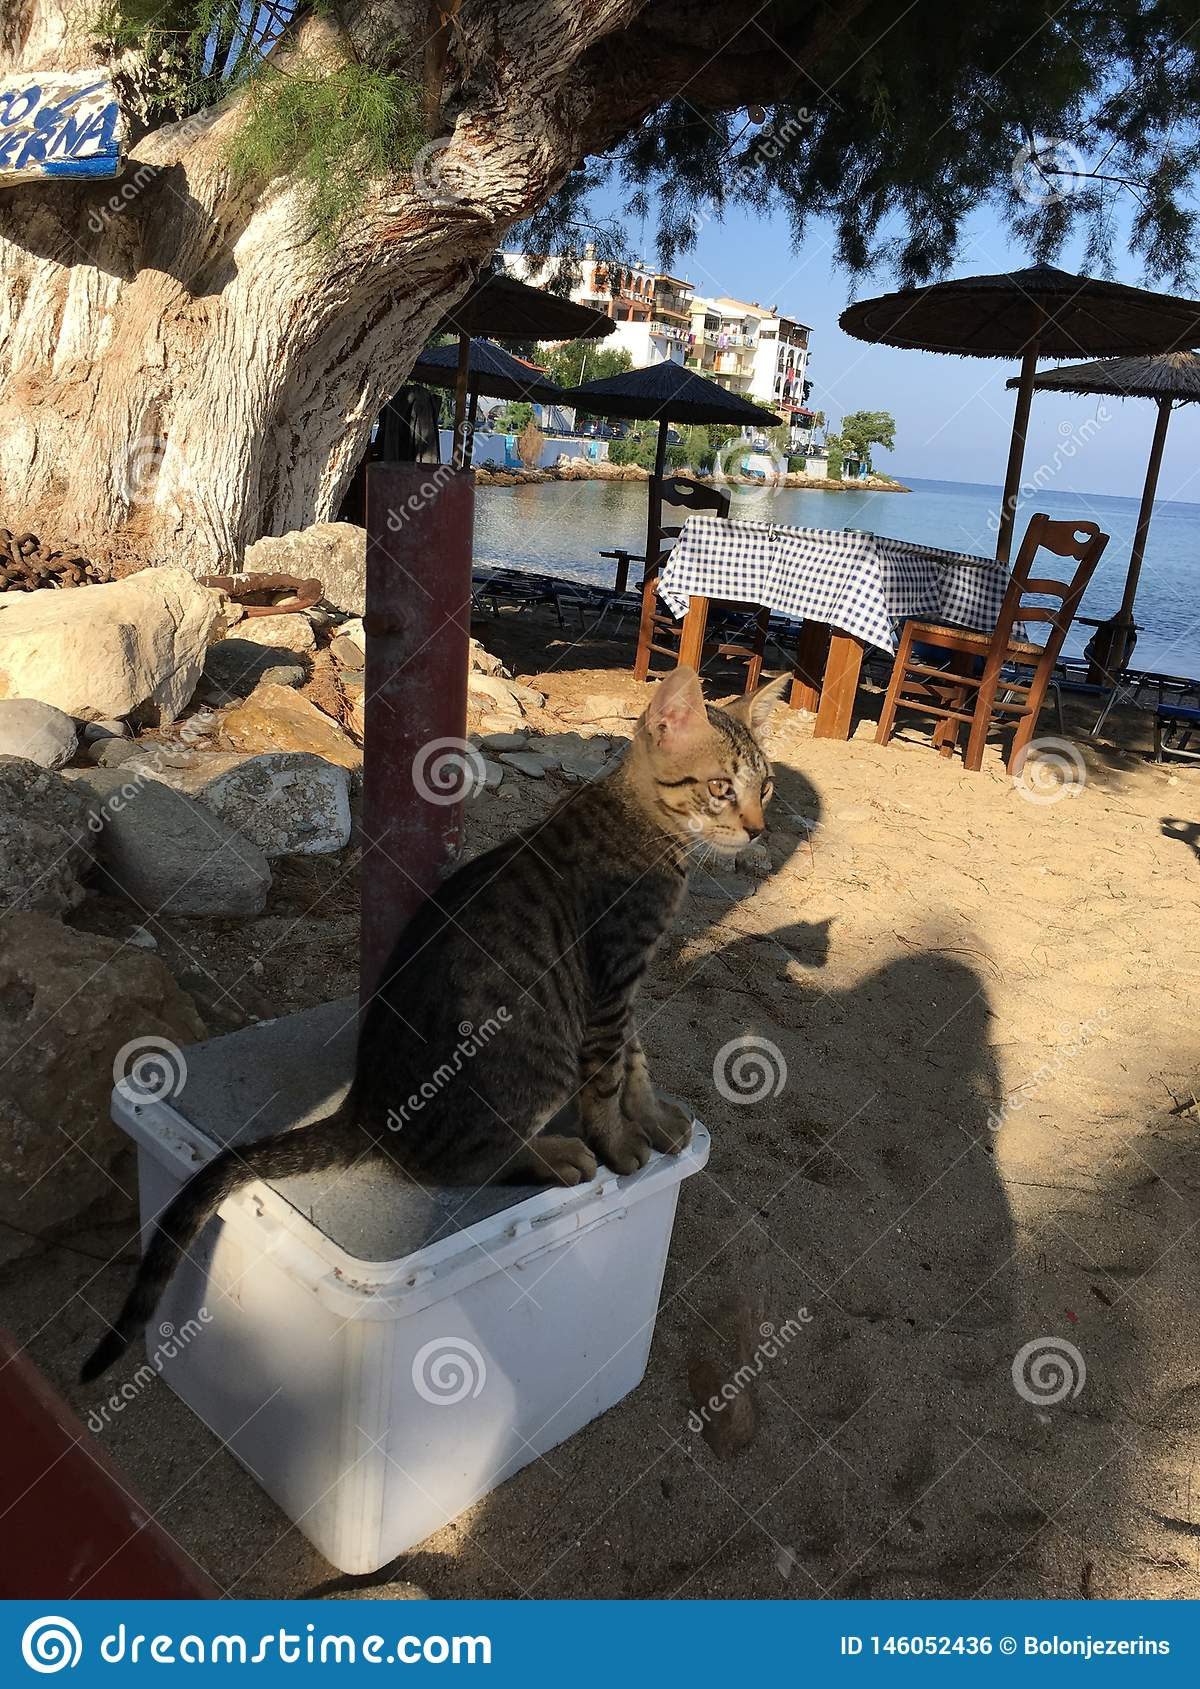 A curious look at the cat on the seashore